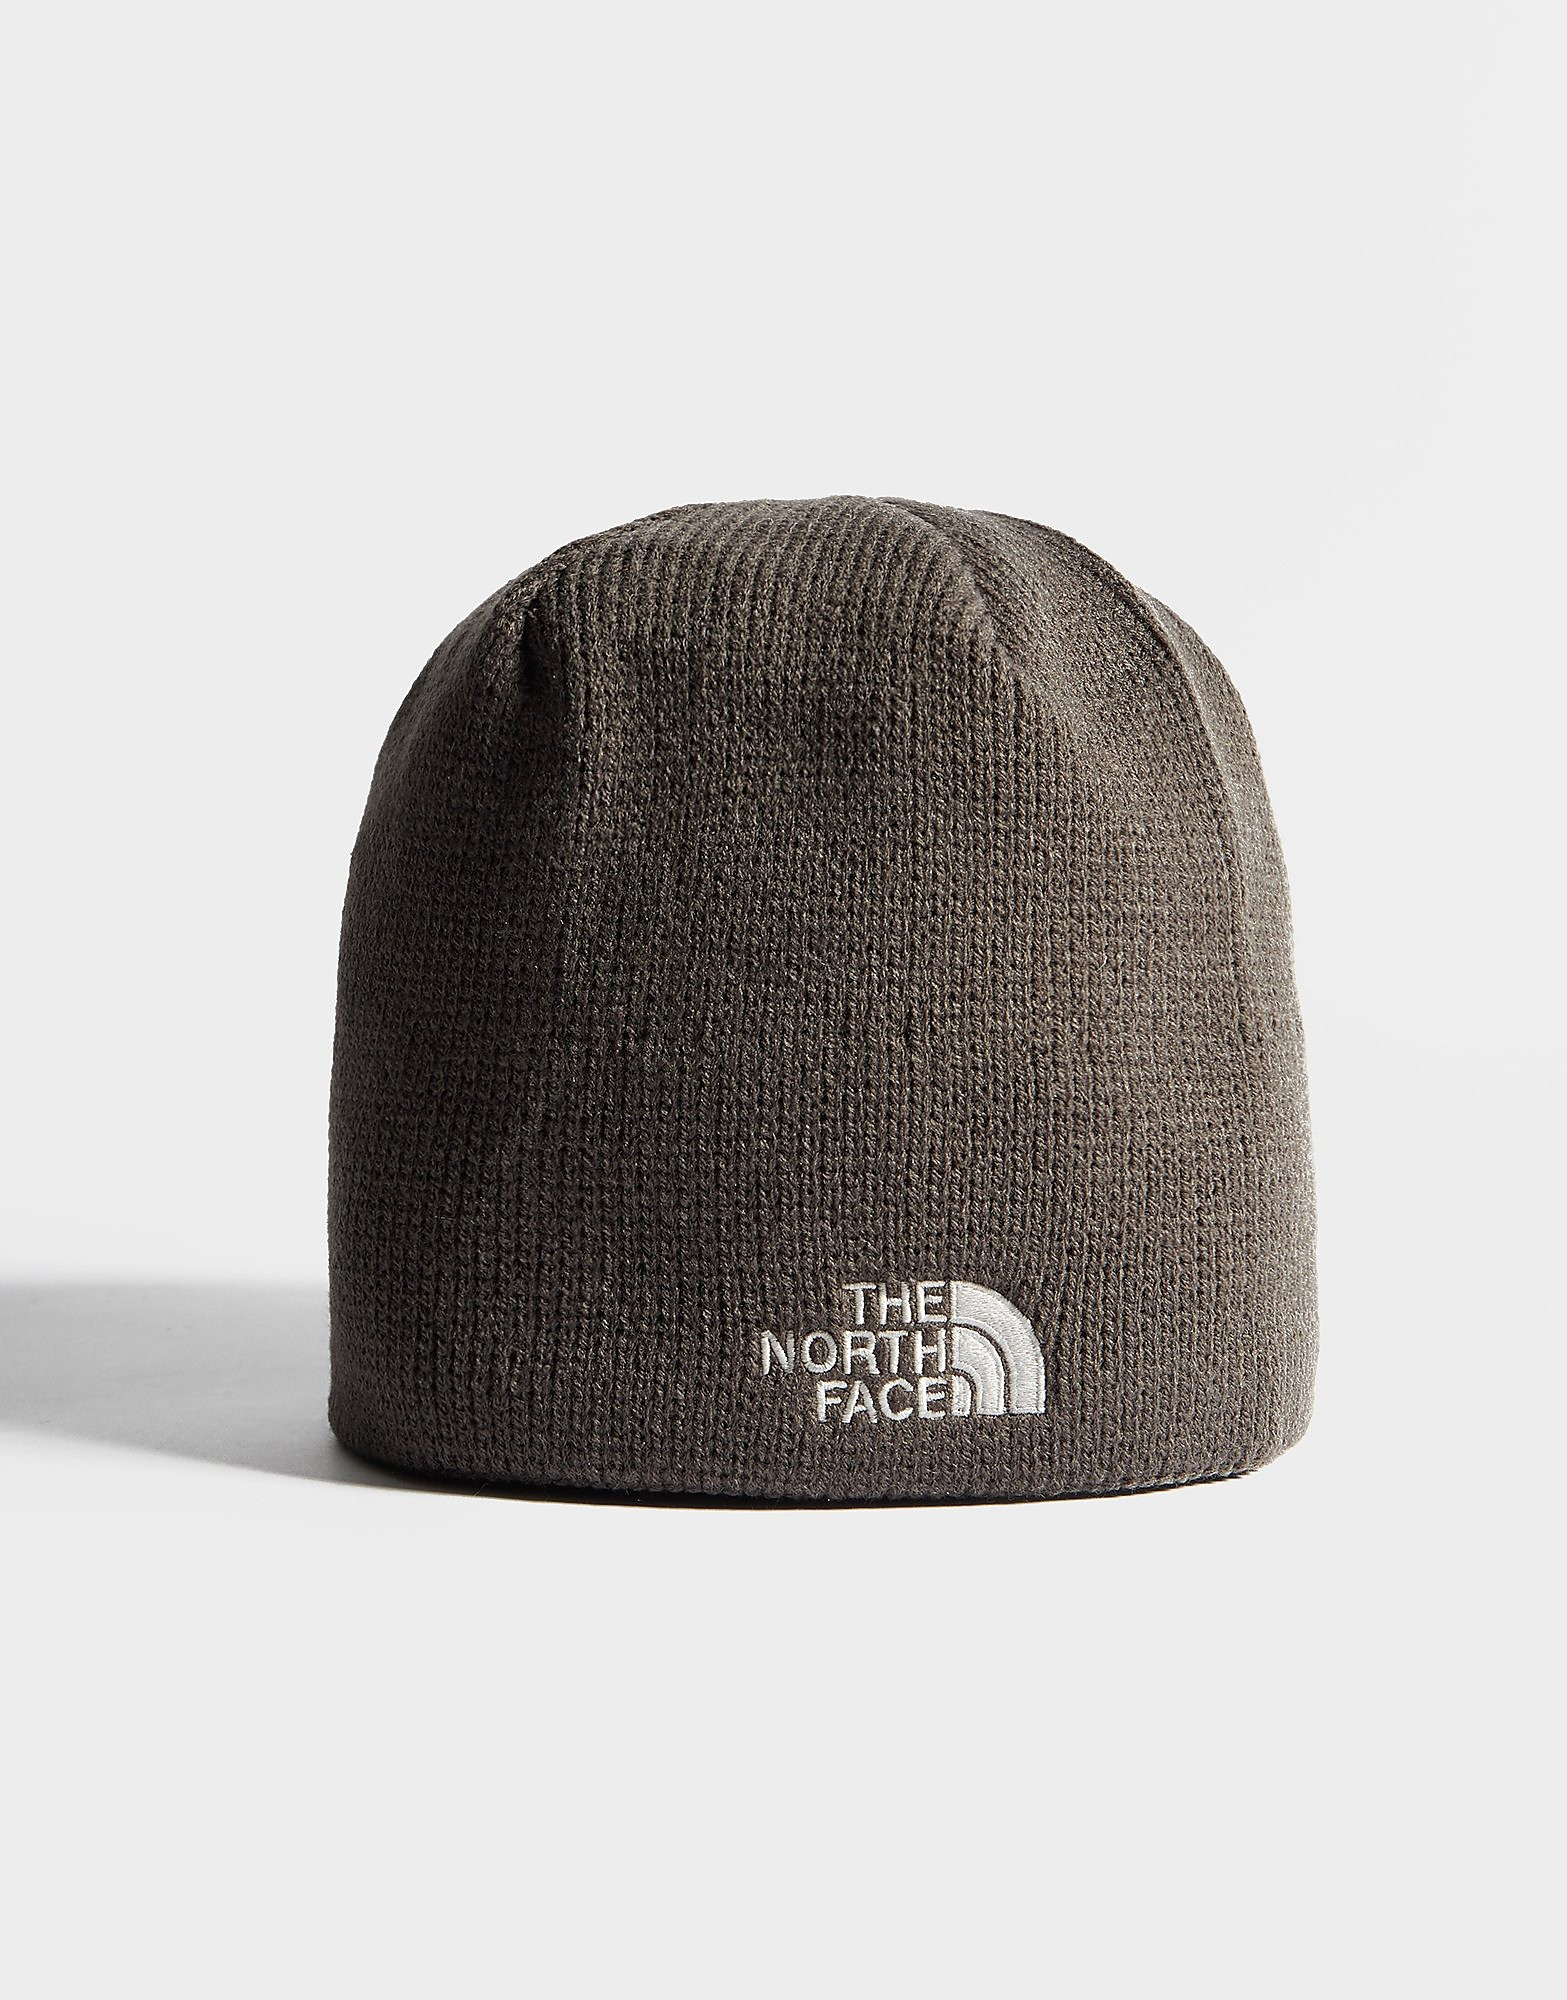 The North Face Bones Beanie Hat